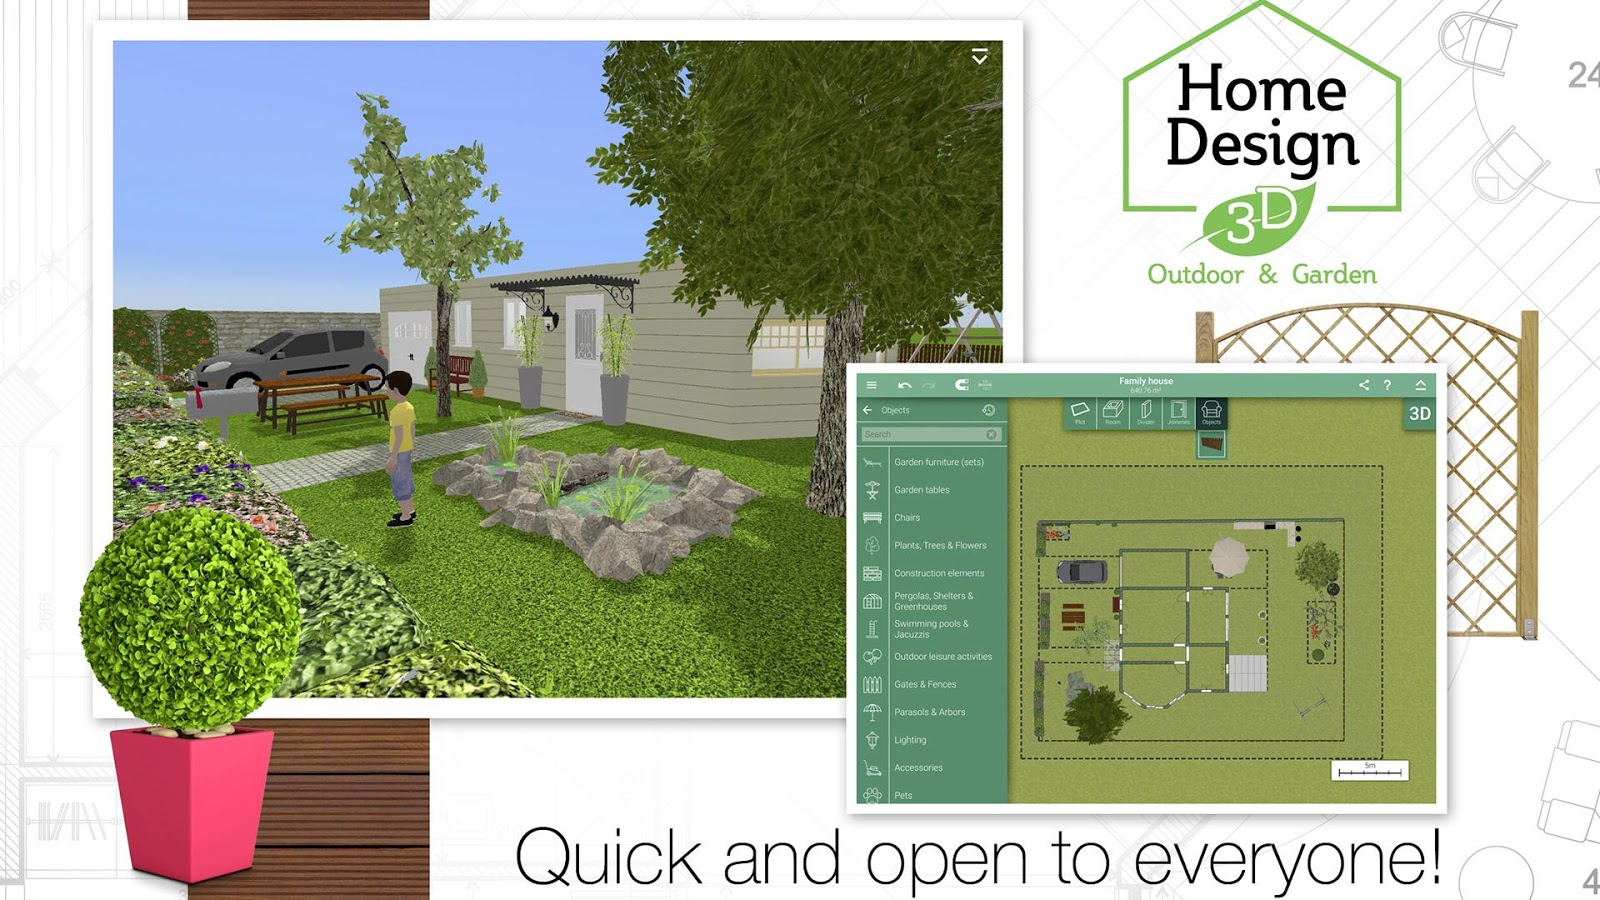 Home Design 3d Outdoorgarden Android Apps On Google Play - home and garden design app